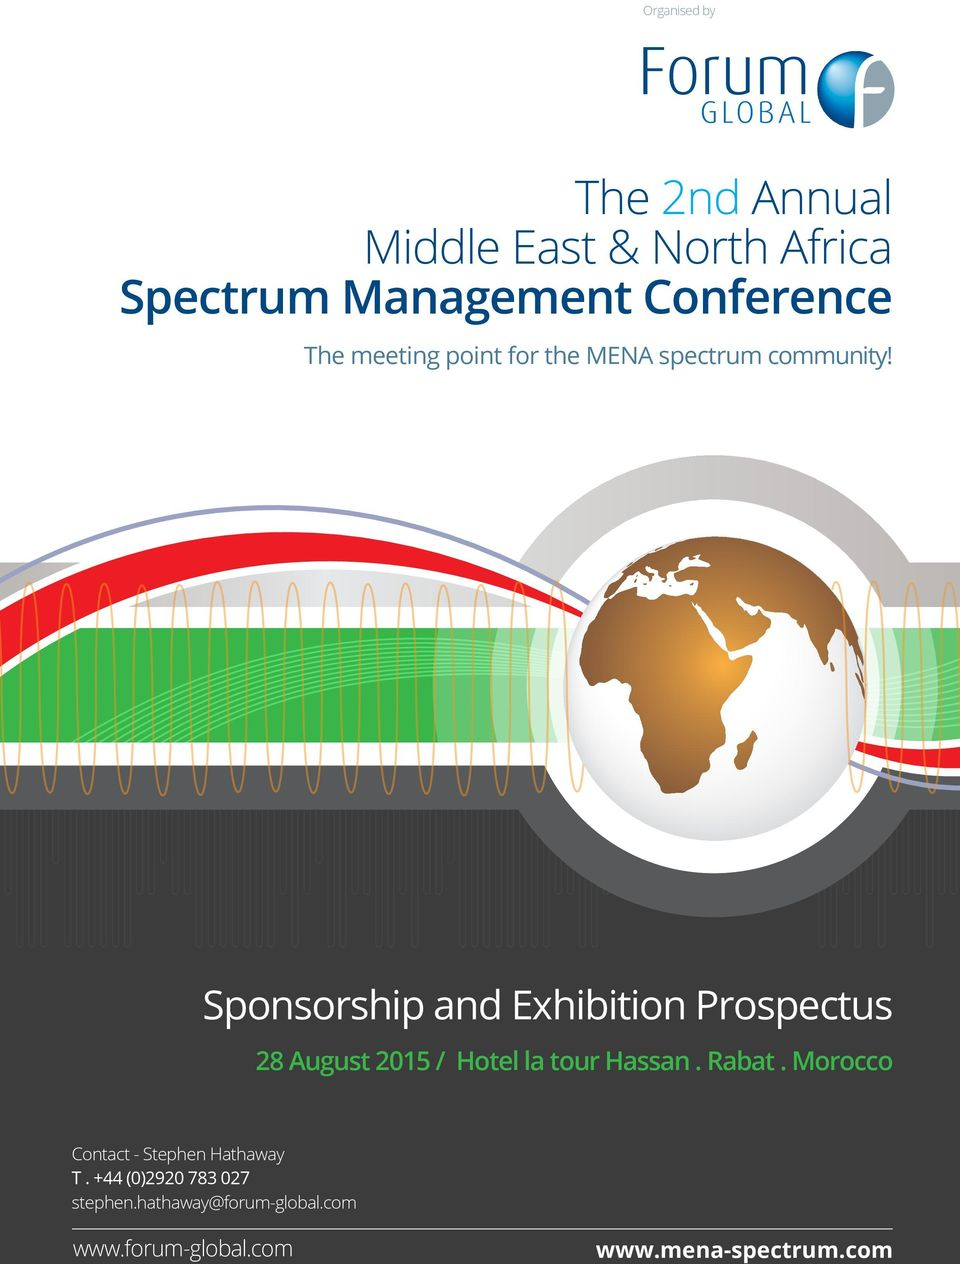 The meeting point for the MENA spectrum